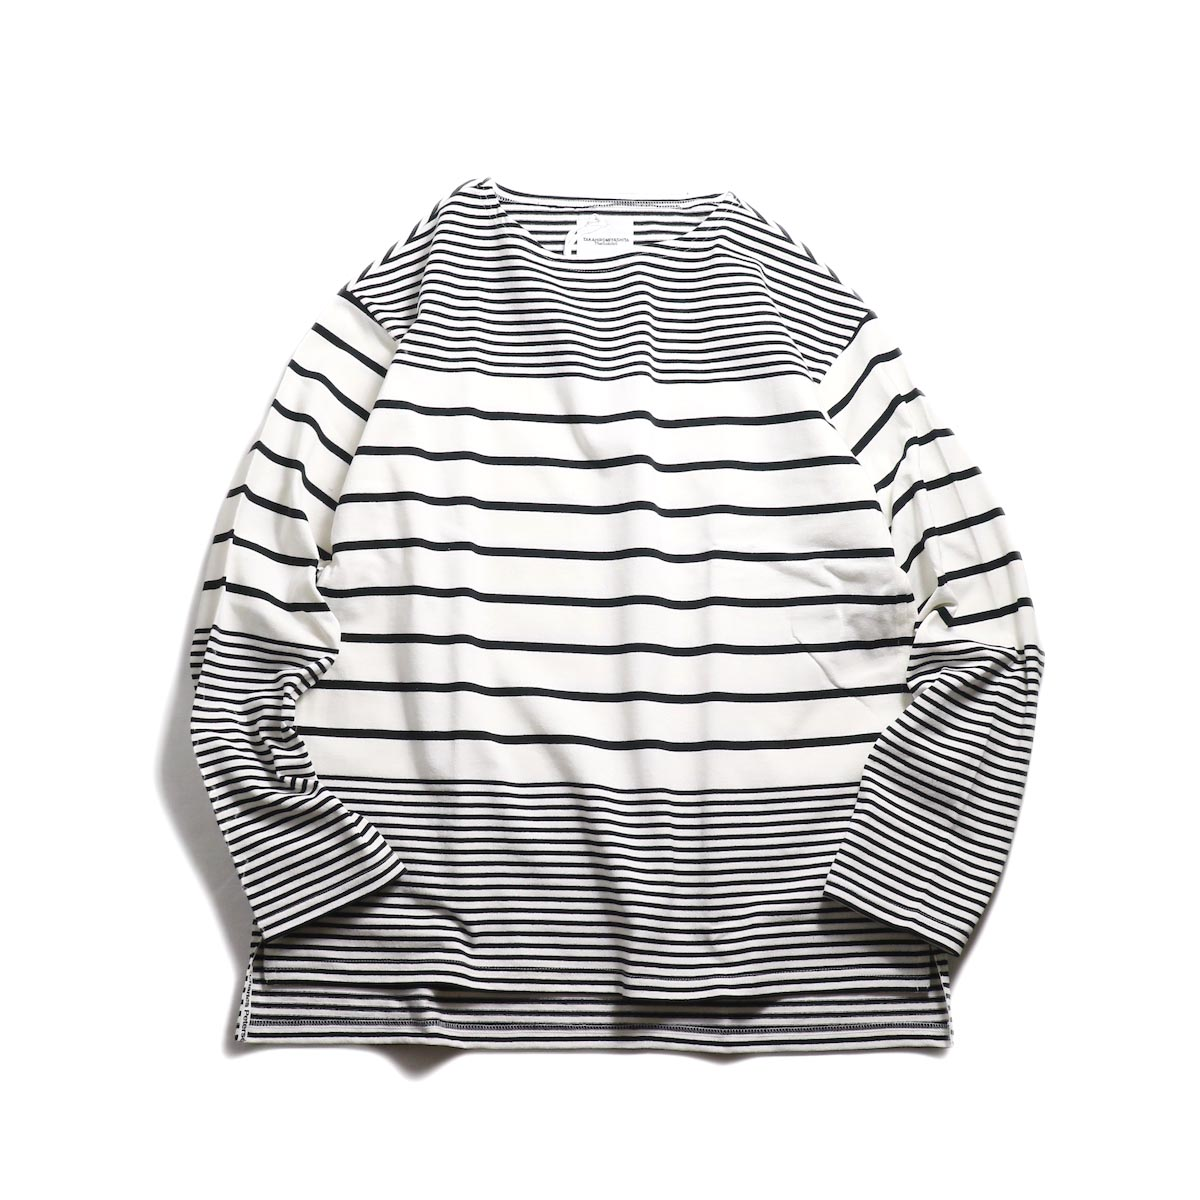 The Soloist / sc.0010bSS19 jimmy stripe oversized boat neck shirt. -White×Black 正面